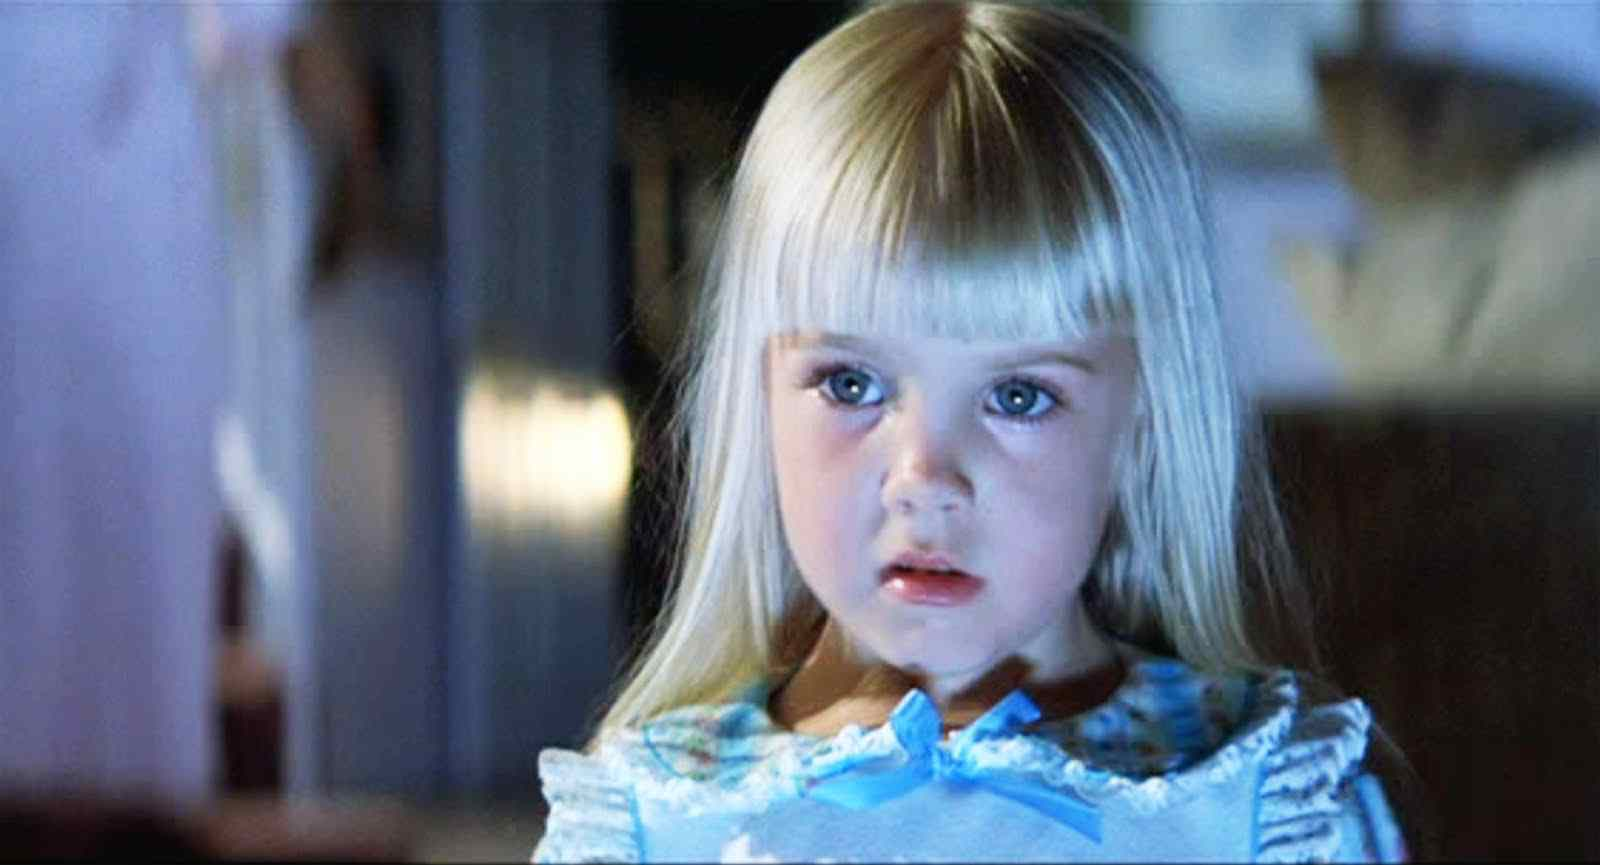 the cute blonde haired beauty played by the late Heather 0'rourke in the infamous poltergeist movie